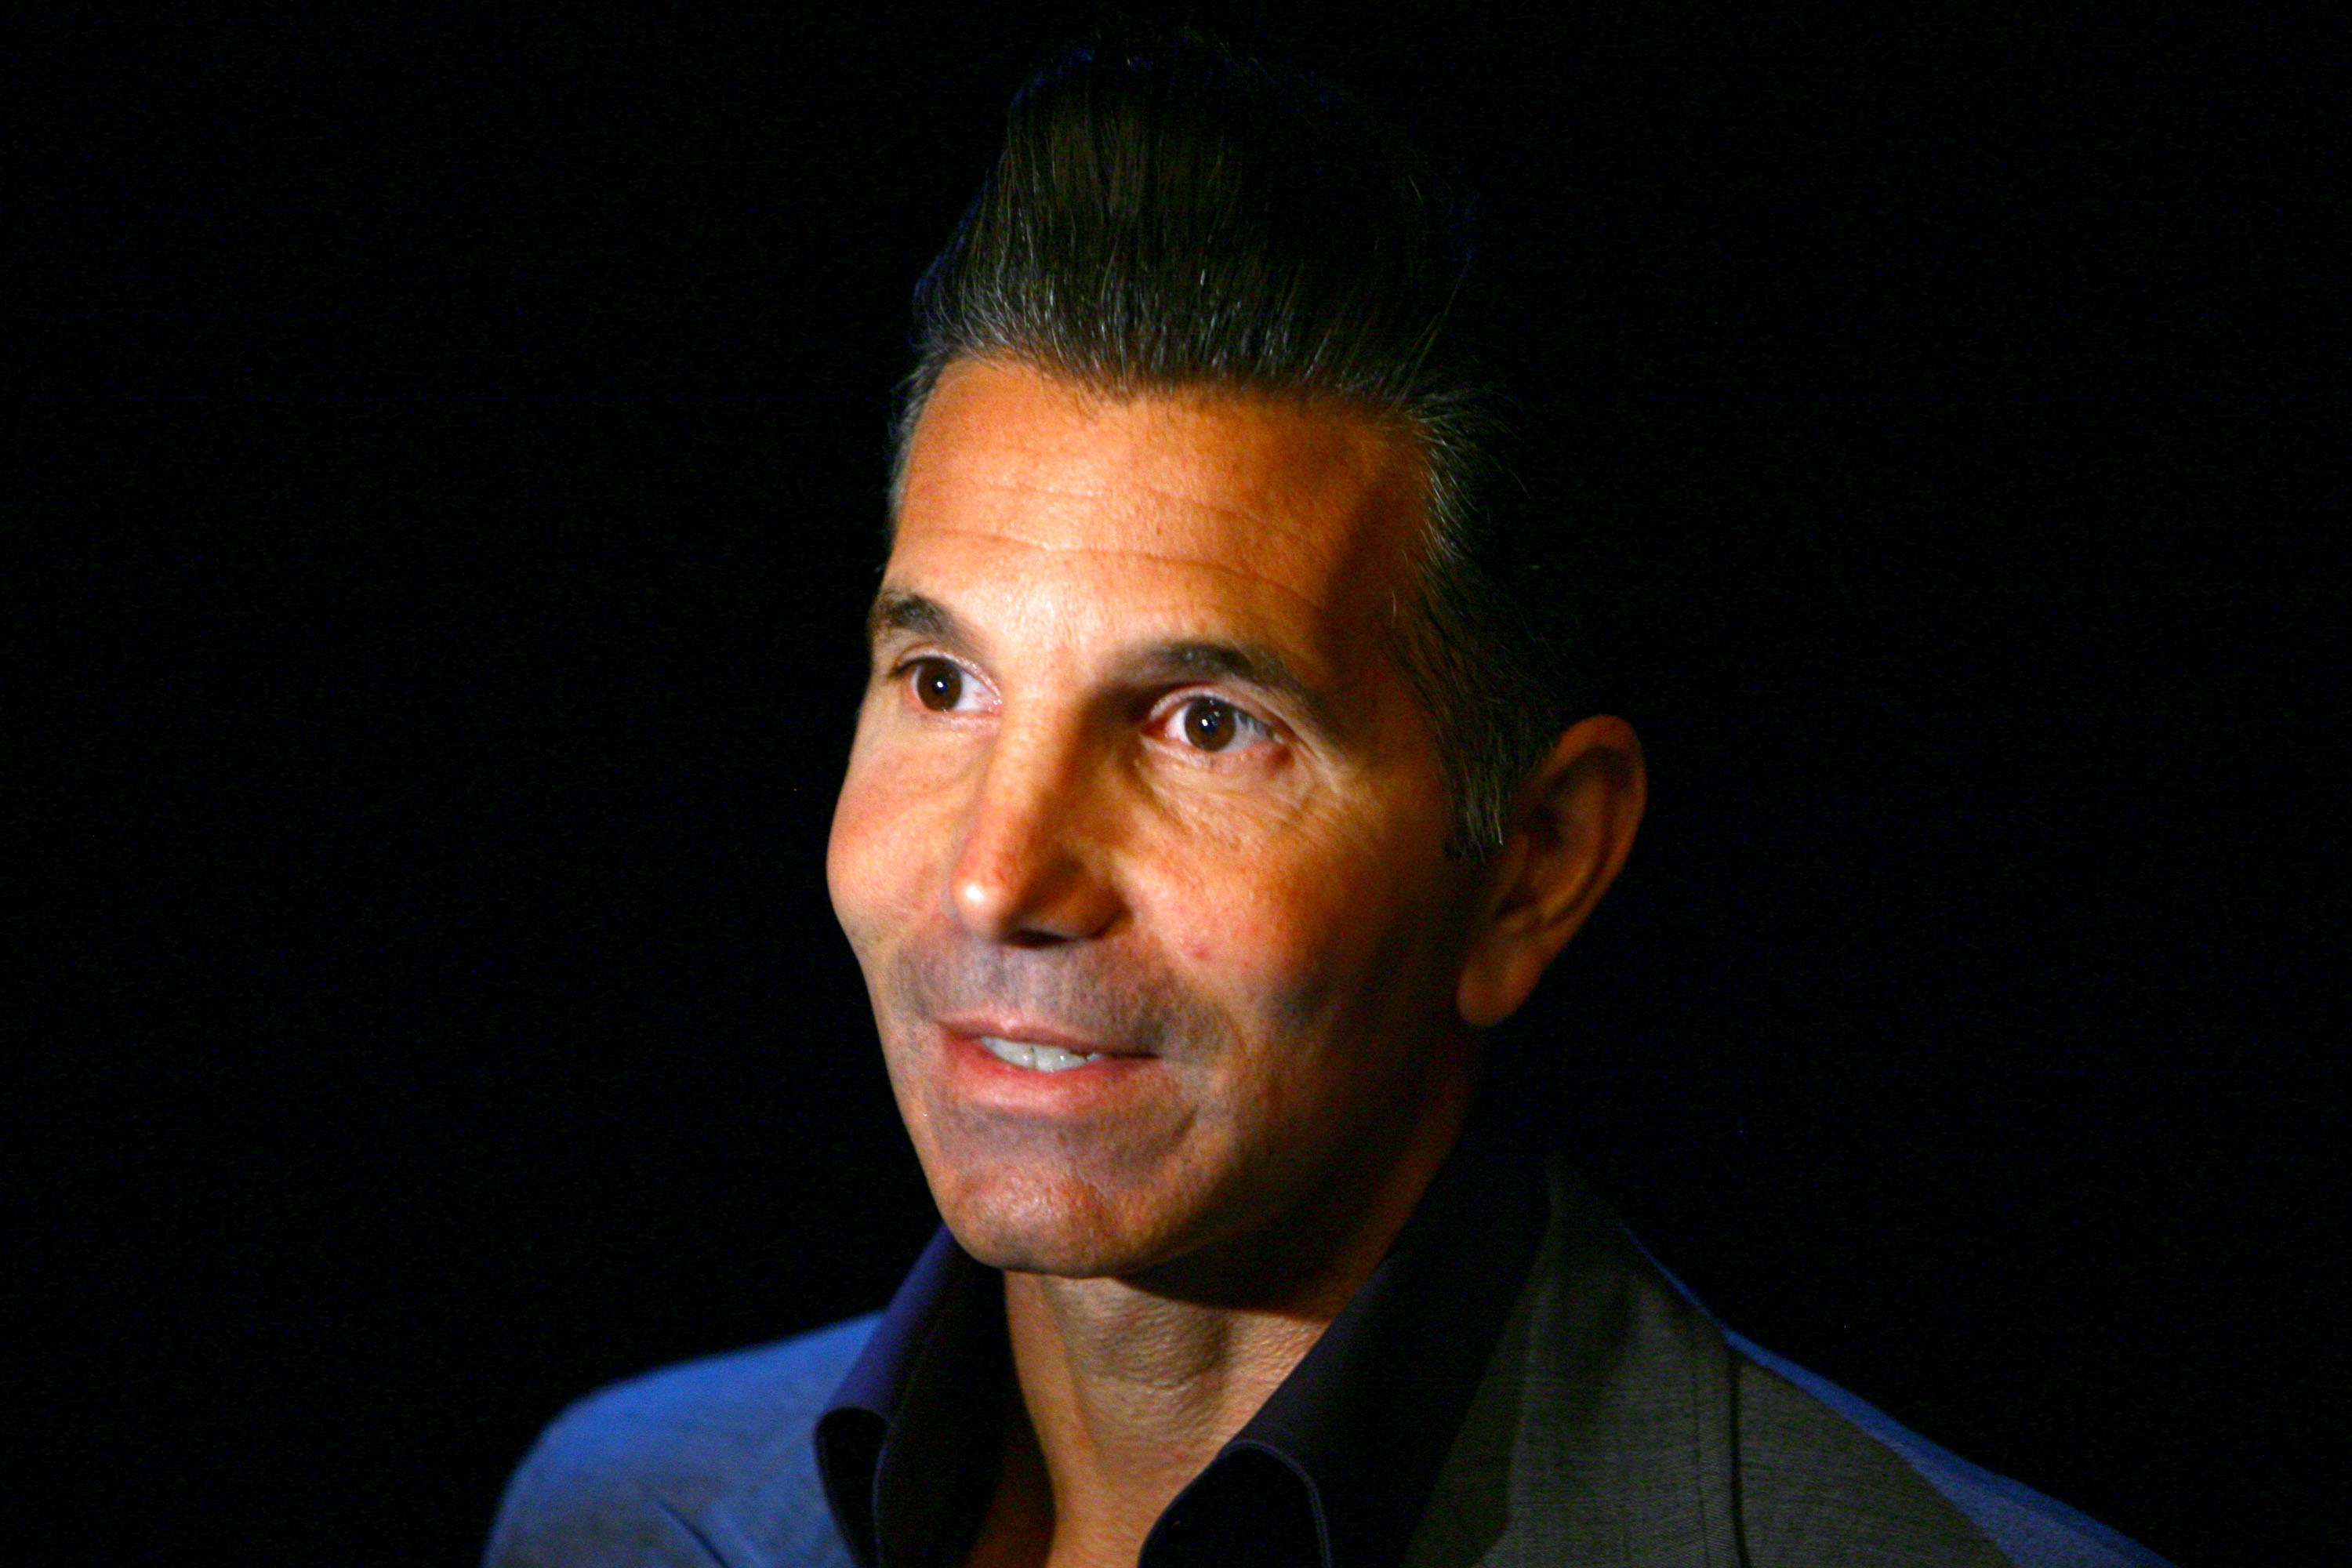 Mossimo Giannulli Told Blog About Faking Enrollment At USC To Get Parents' Money